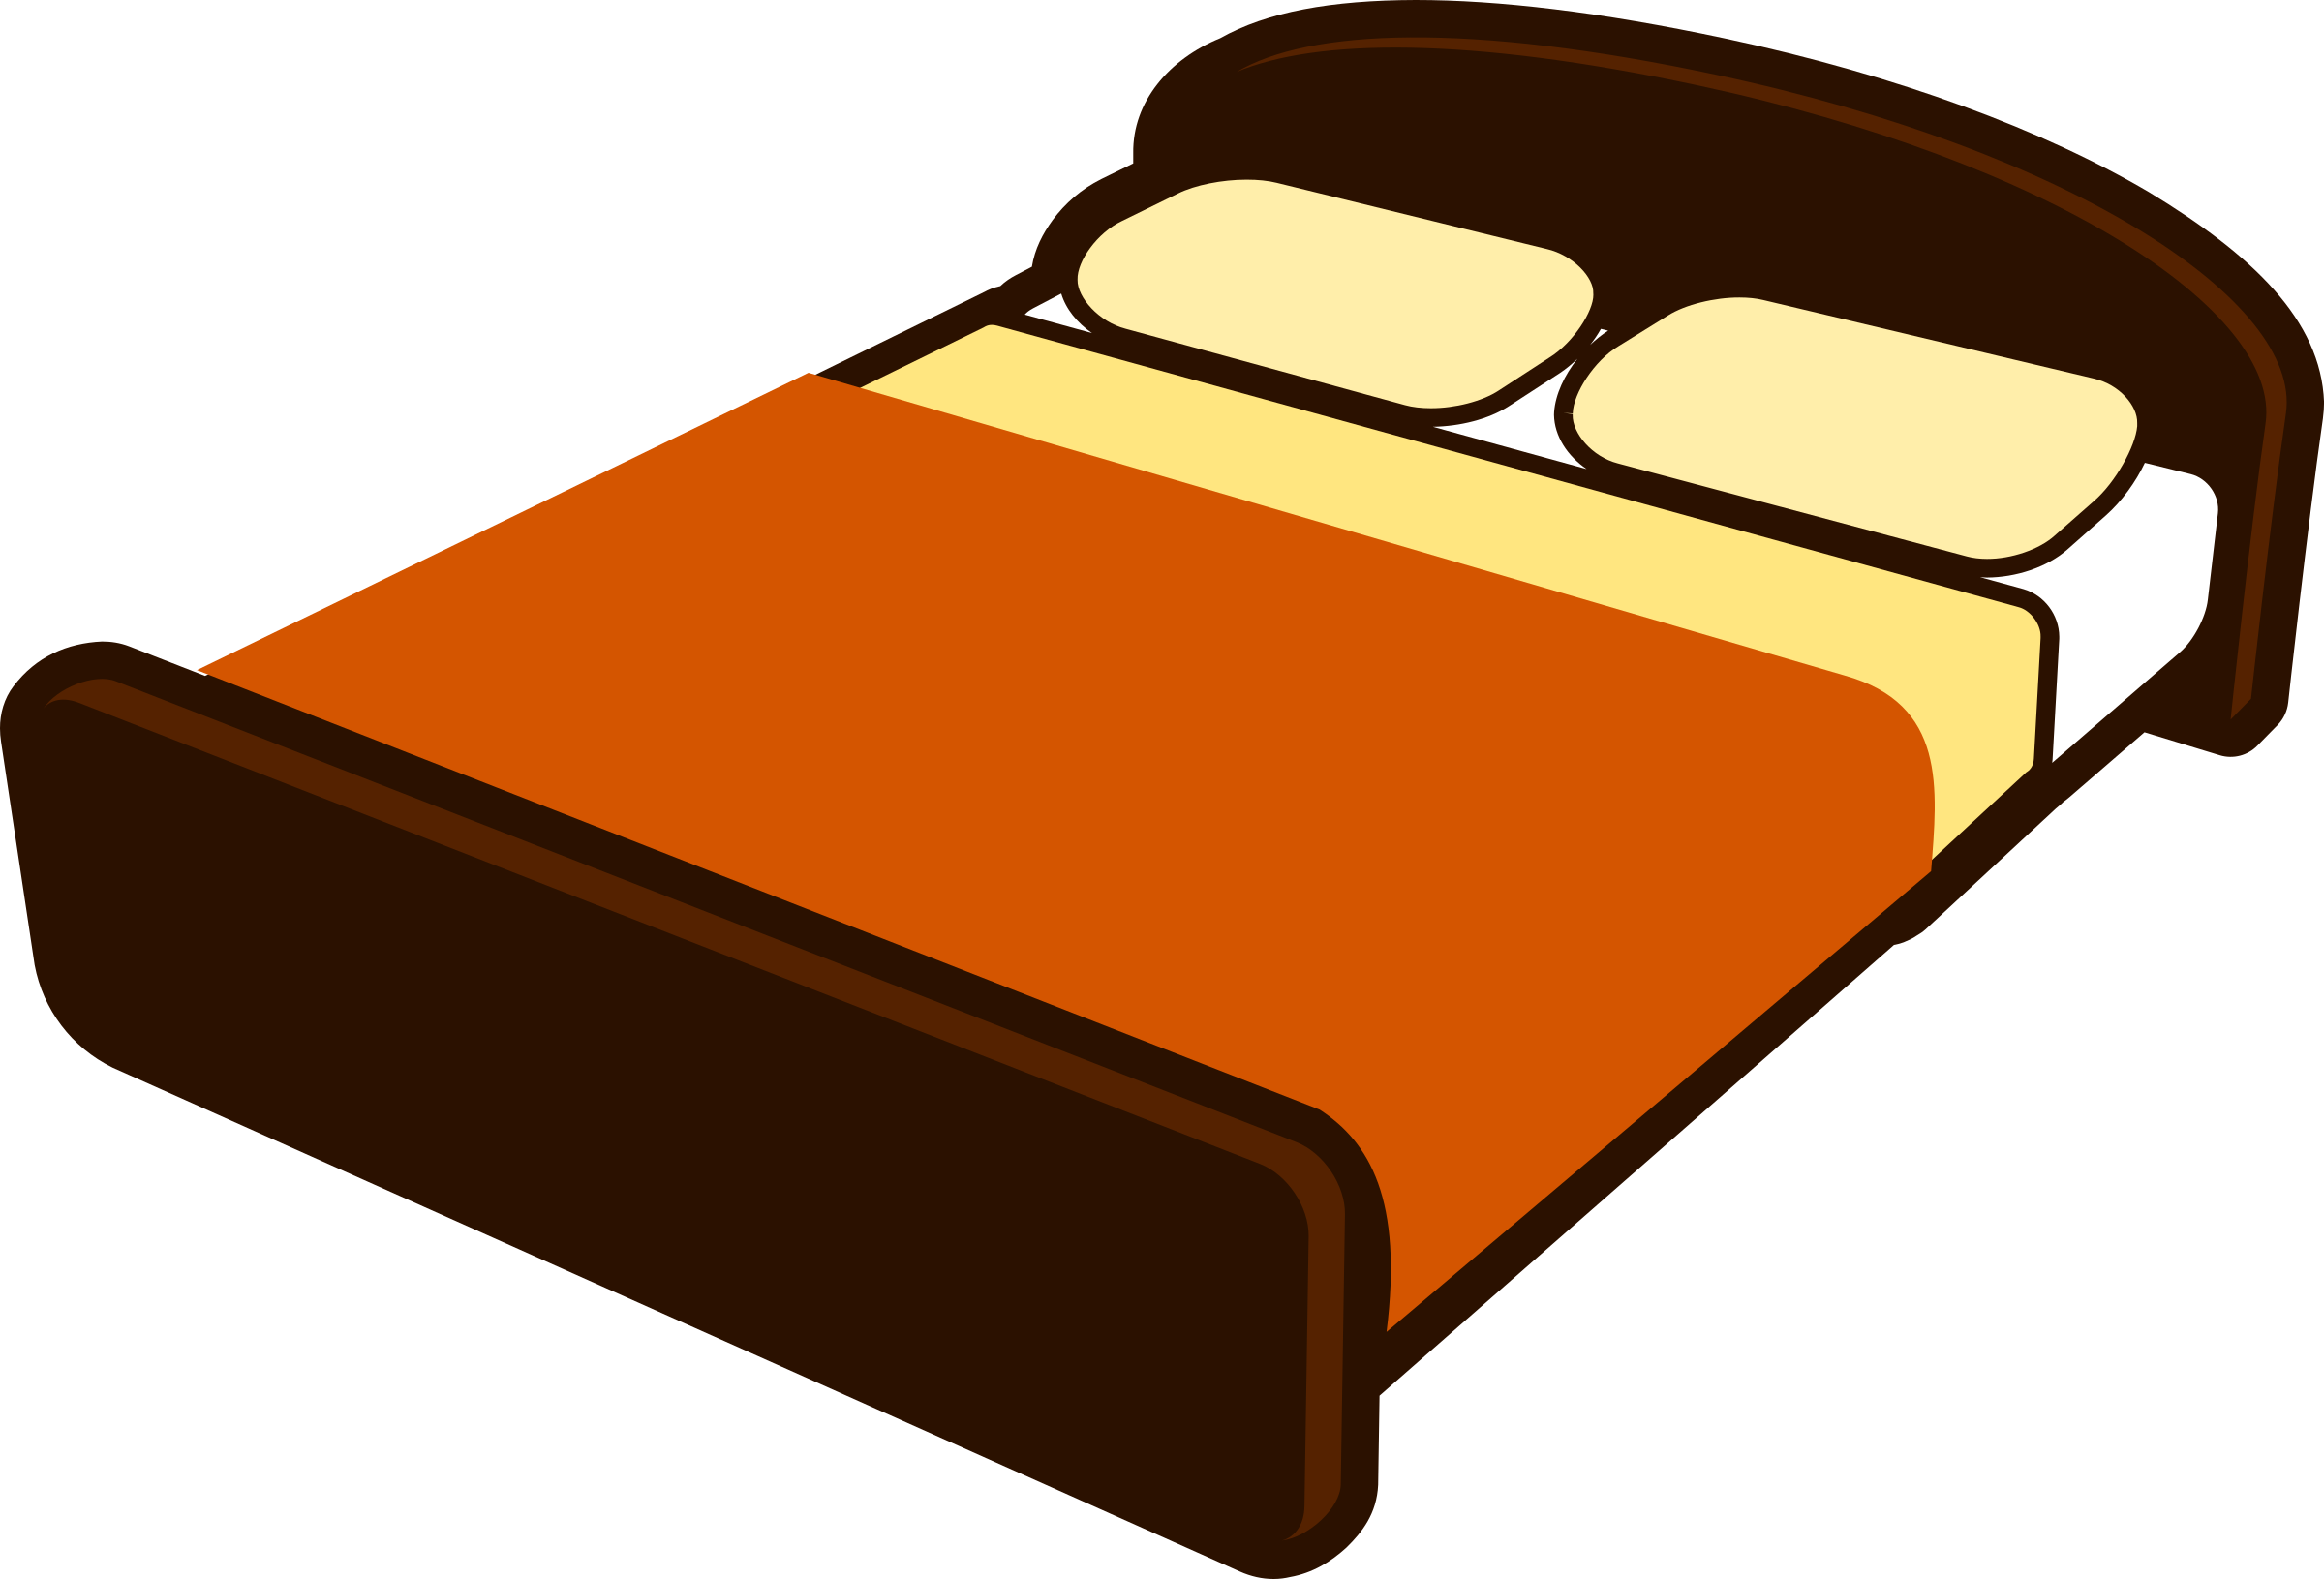 Free Bed Clipart Png, Download Free Clip Art, Free Clip Art.